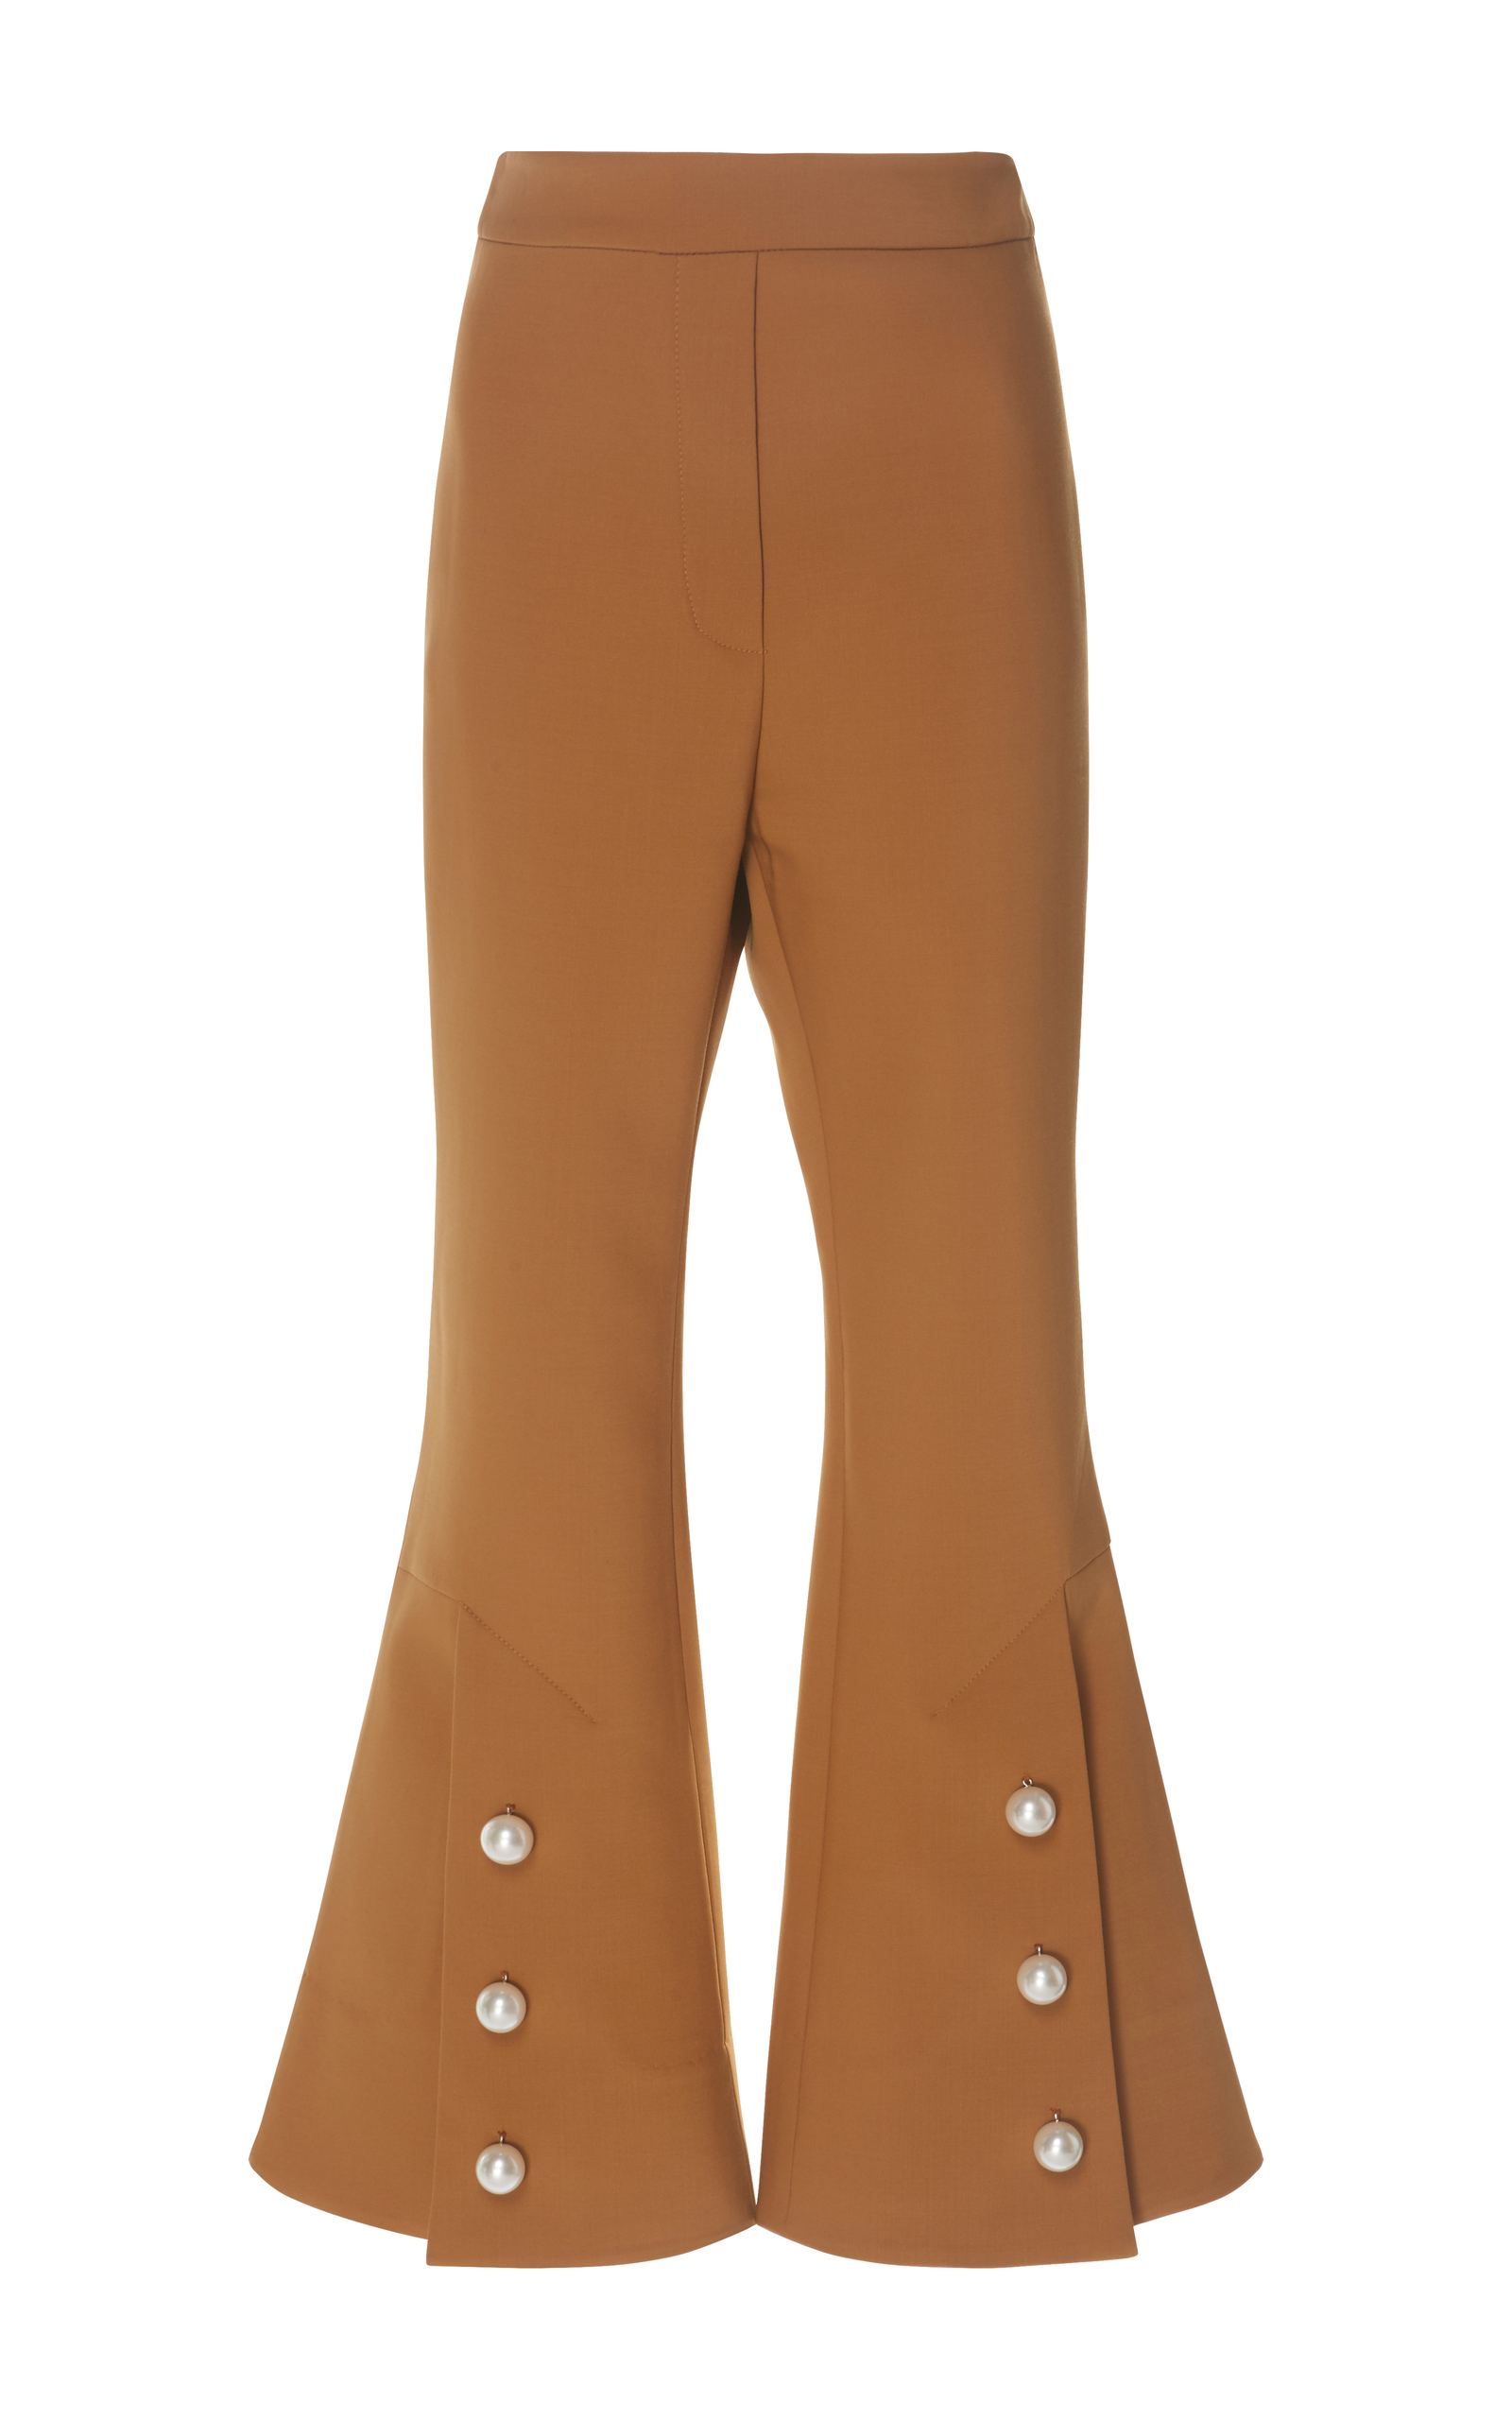 Fourth Element Pearl-Embellished Cropped Flare Trousers Ellery High Quality Huge Surprise Cheap Online Cheap Sale Get To Buy Affordable xnFefv5By